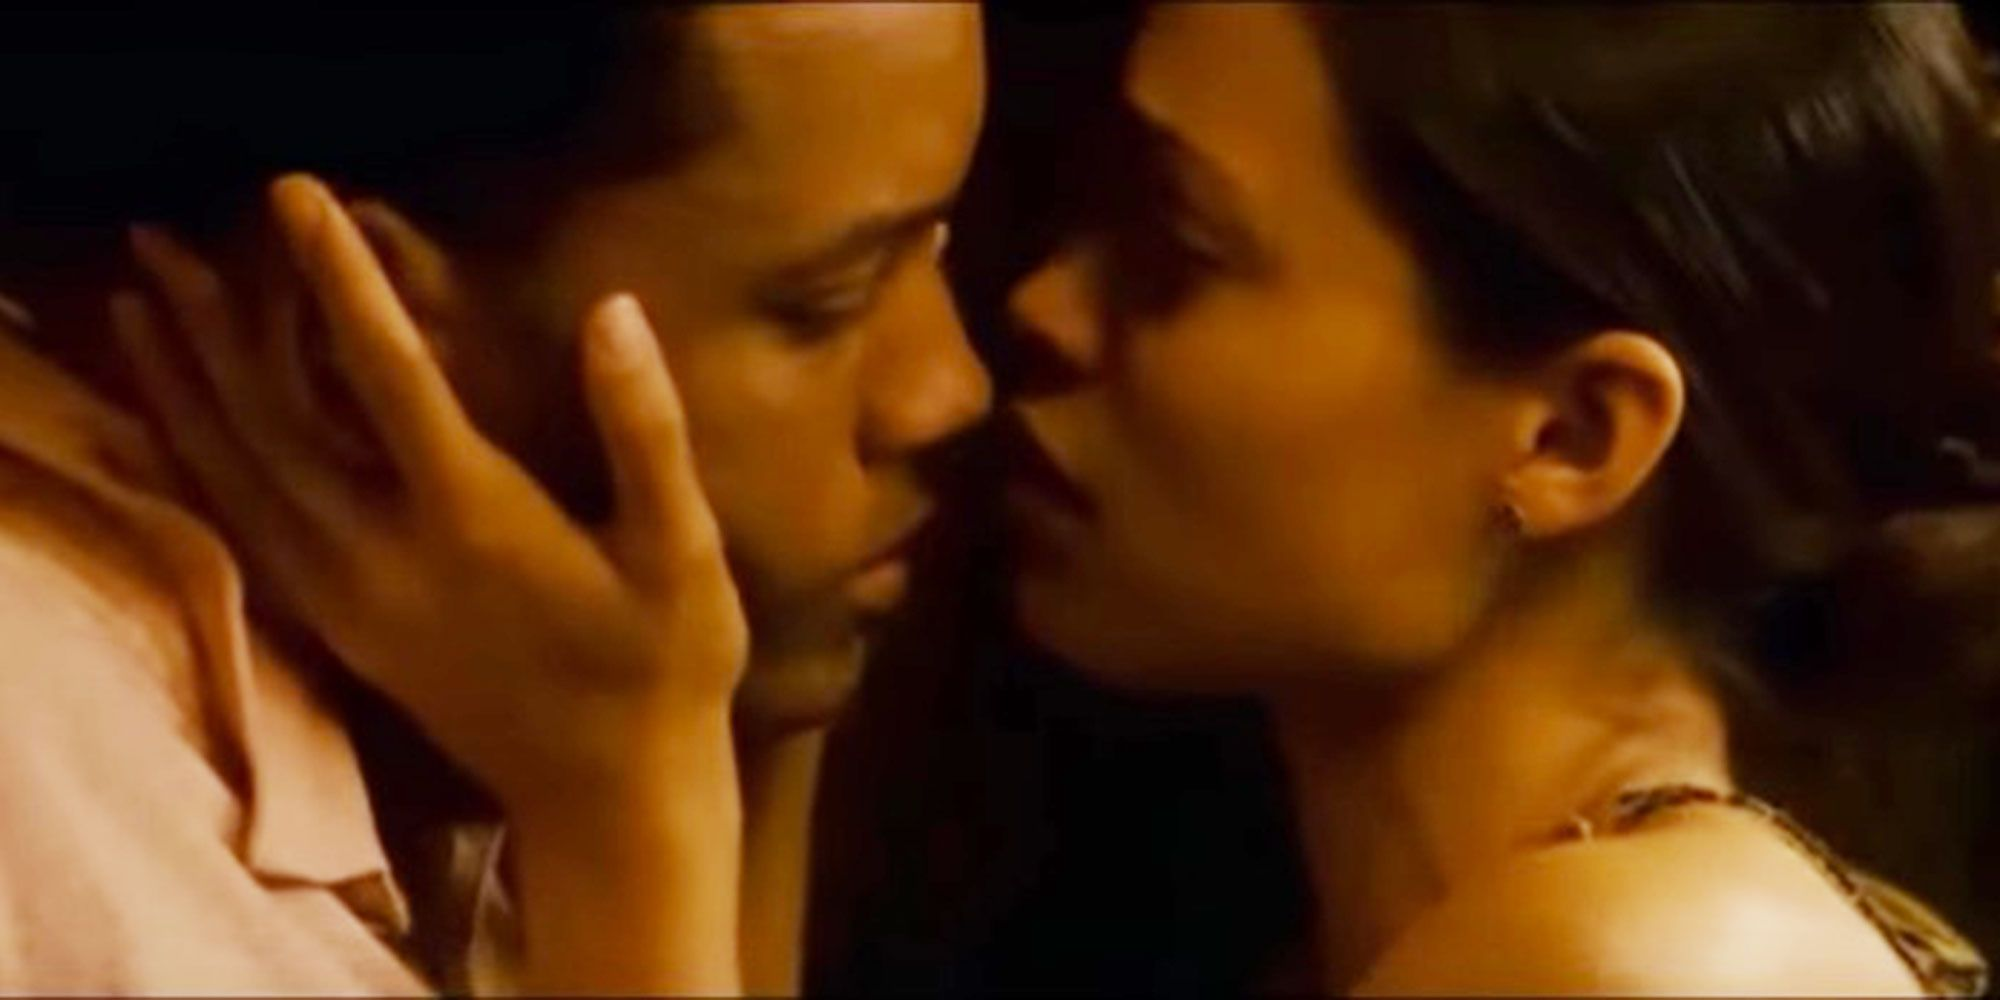 Hottest sex scenes of all time